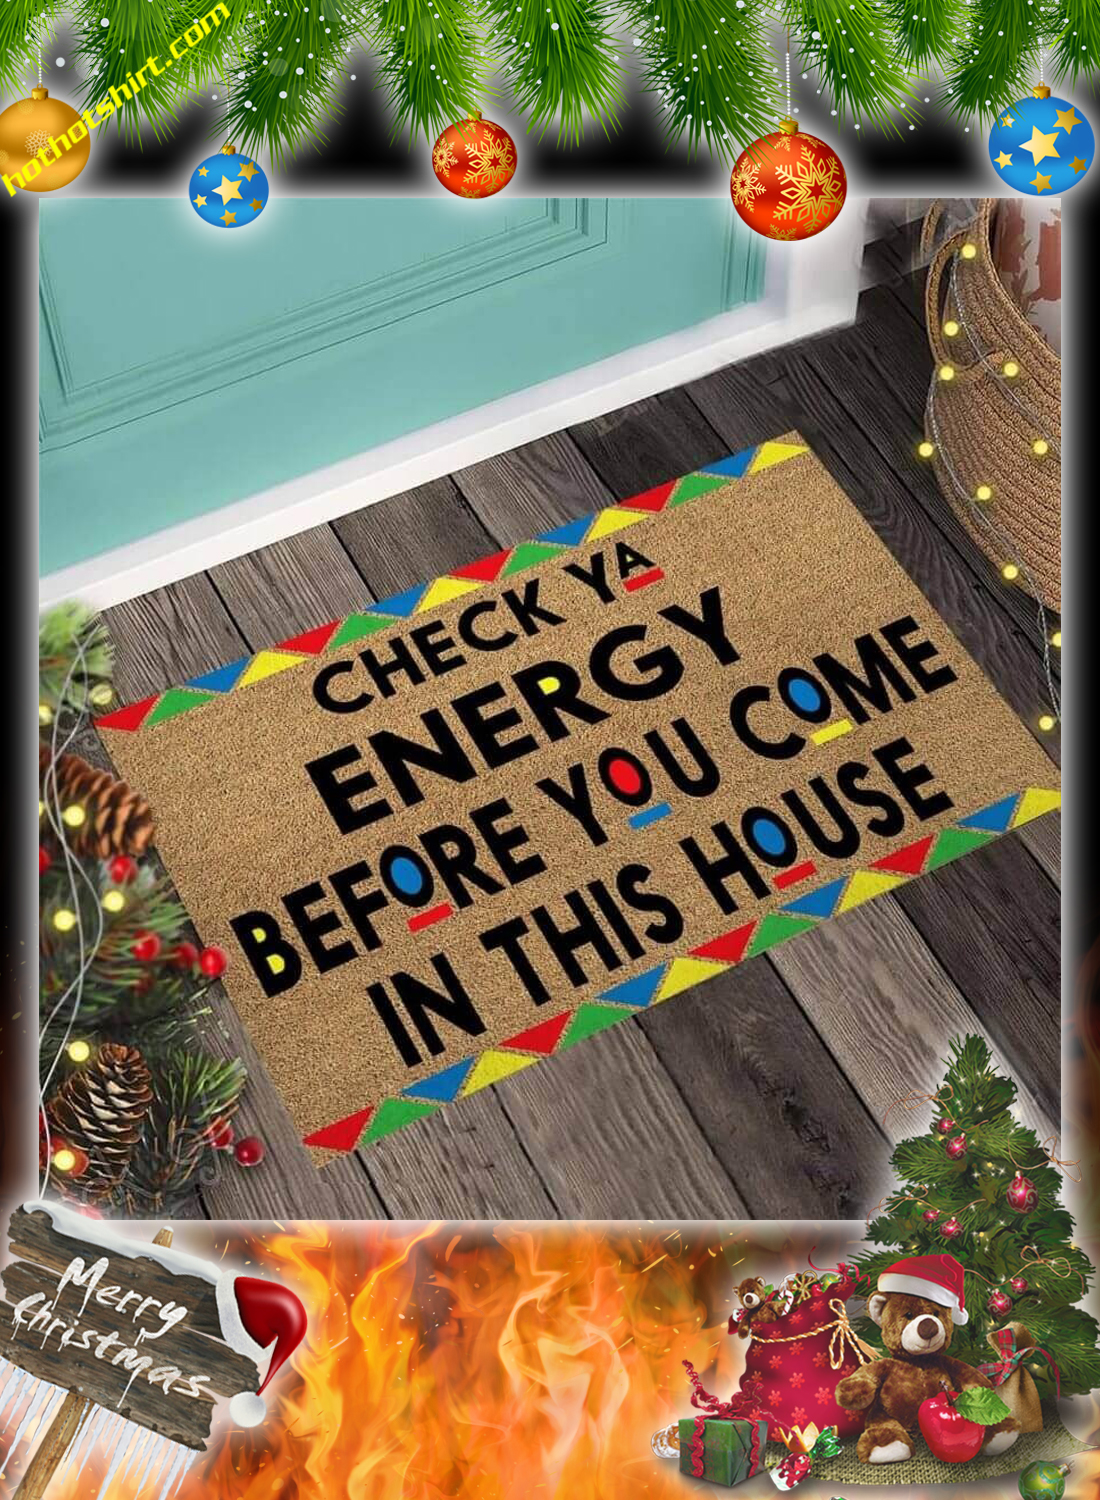 Check ya energy before you come in this house doormat 2